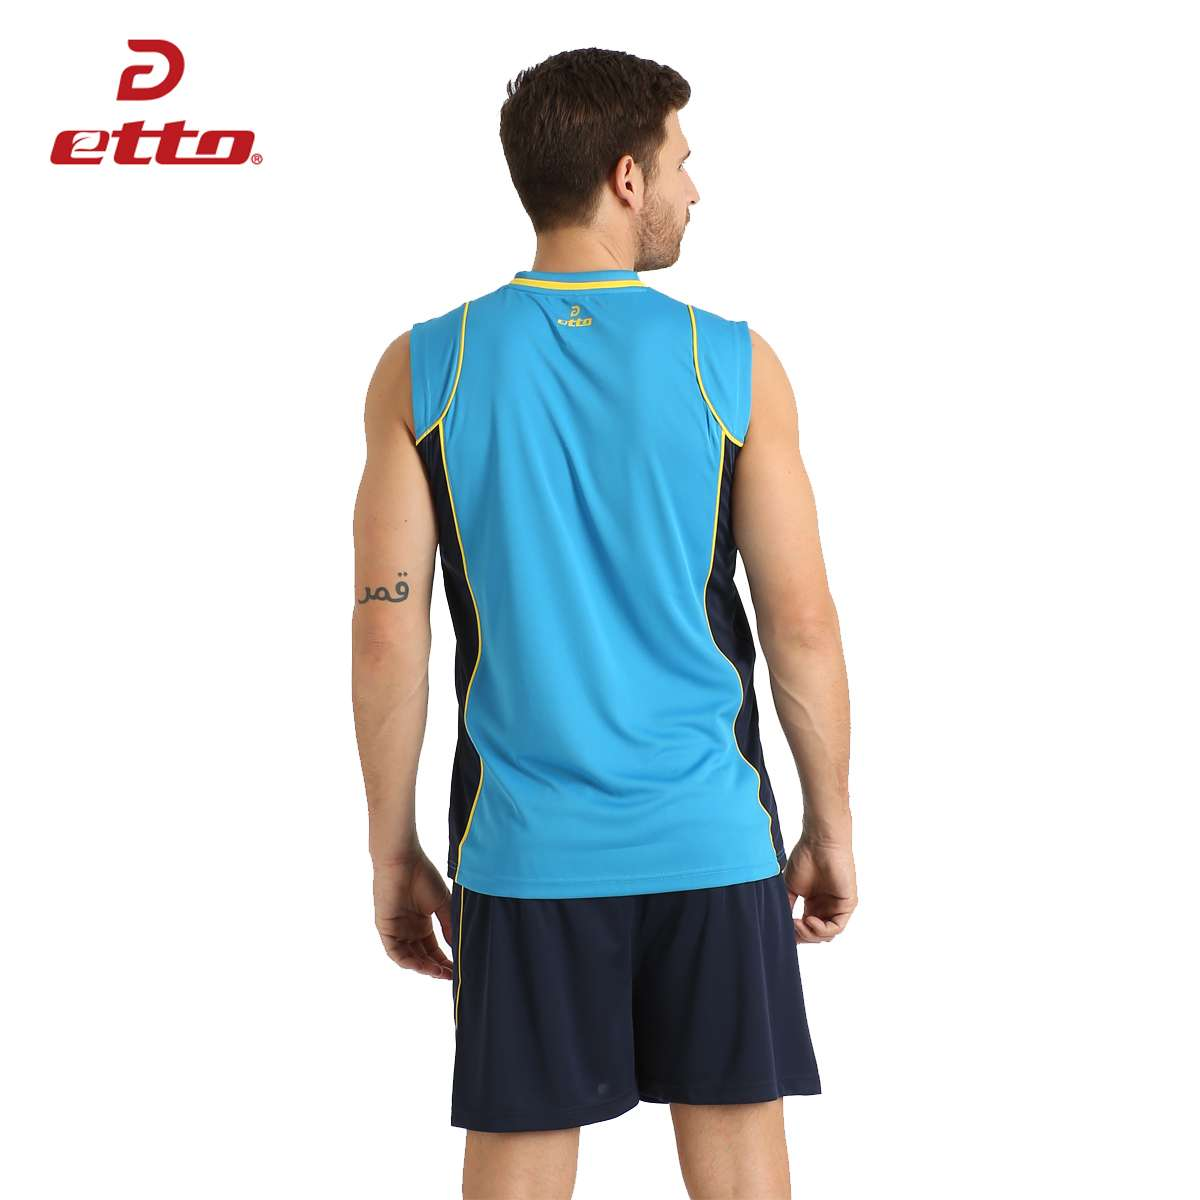 Etto Professional Men Sleeveless Volleyball Set Team Uniforms Breathable Quick dry Volleyball Jersey Suit Sportswear HXB002 2